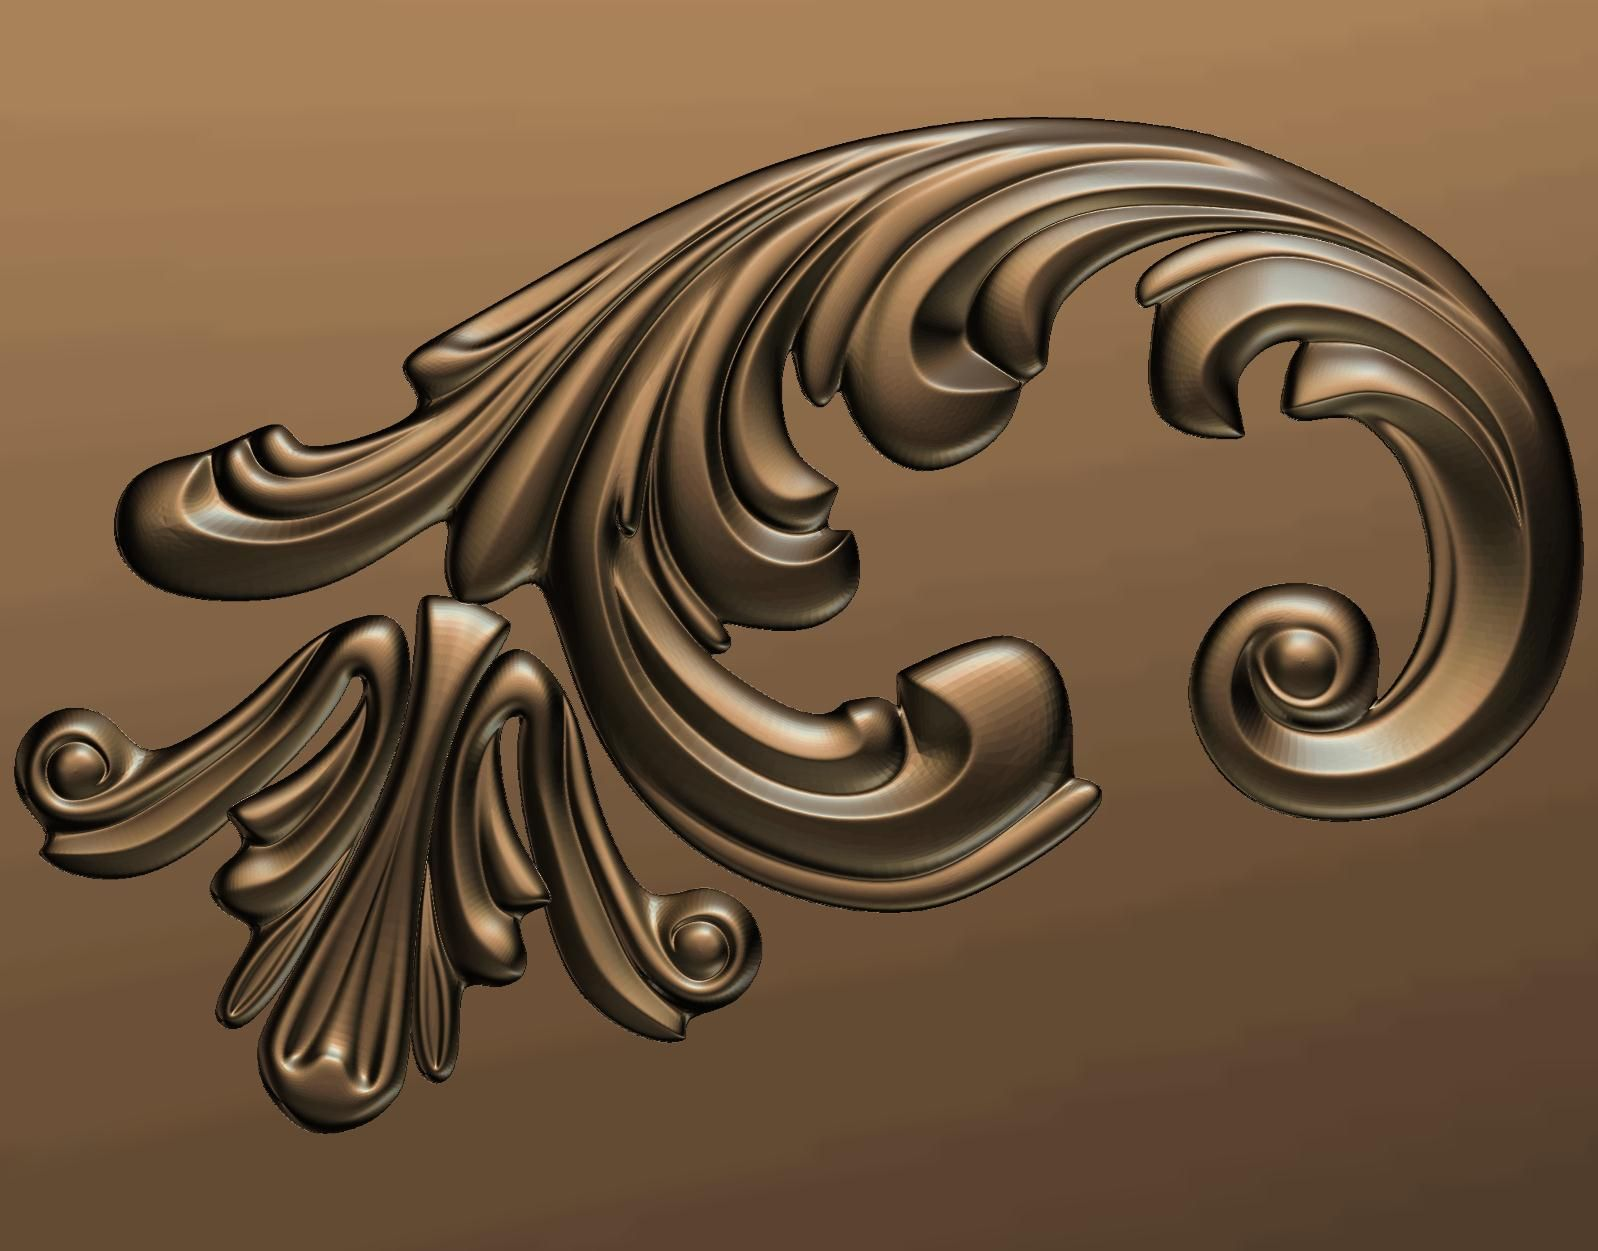 The best free Cnc vector images  Download from 177 free vectors of